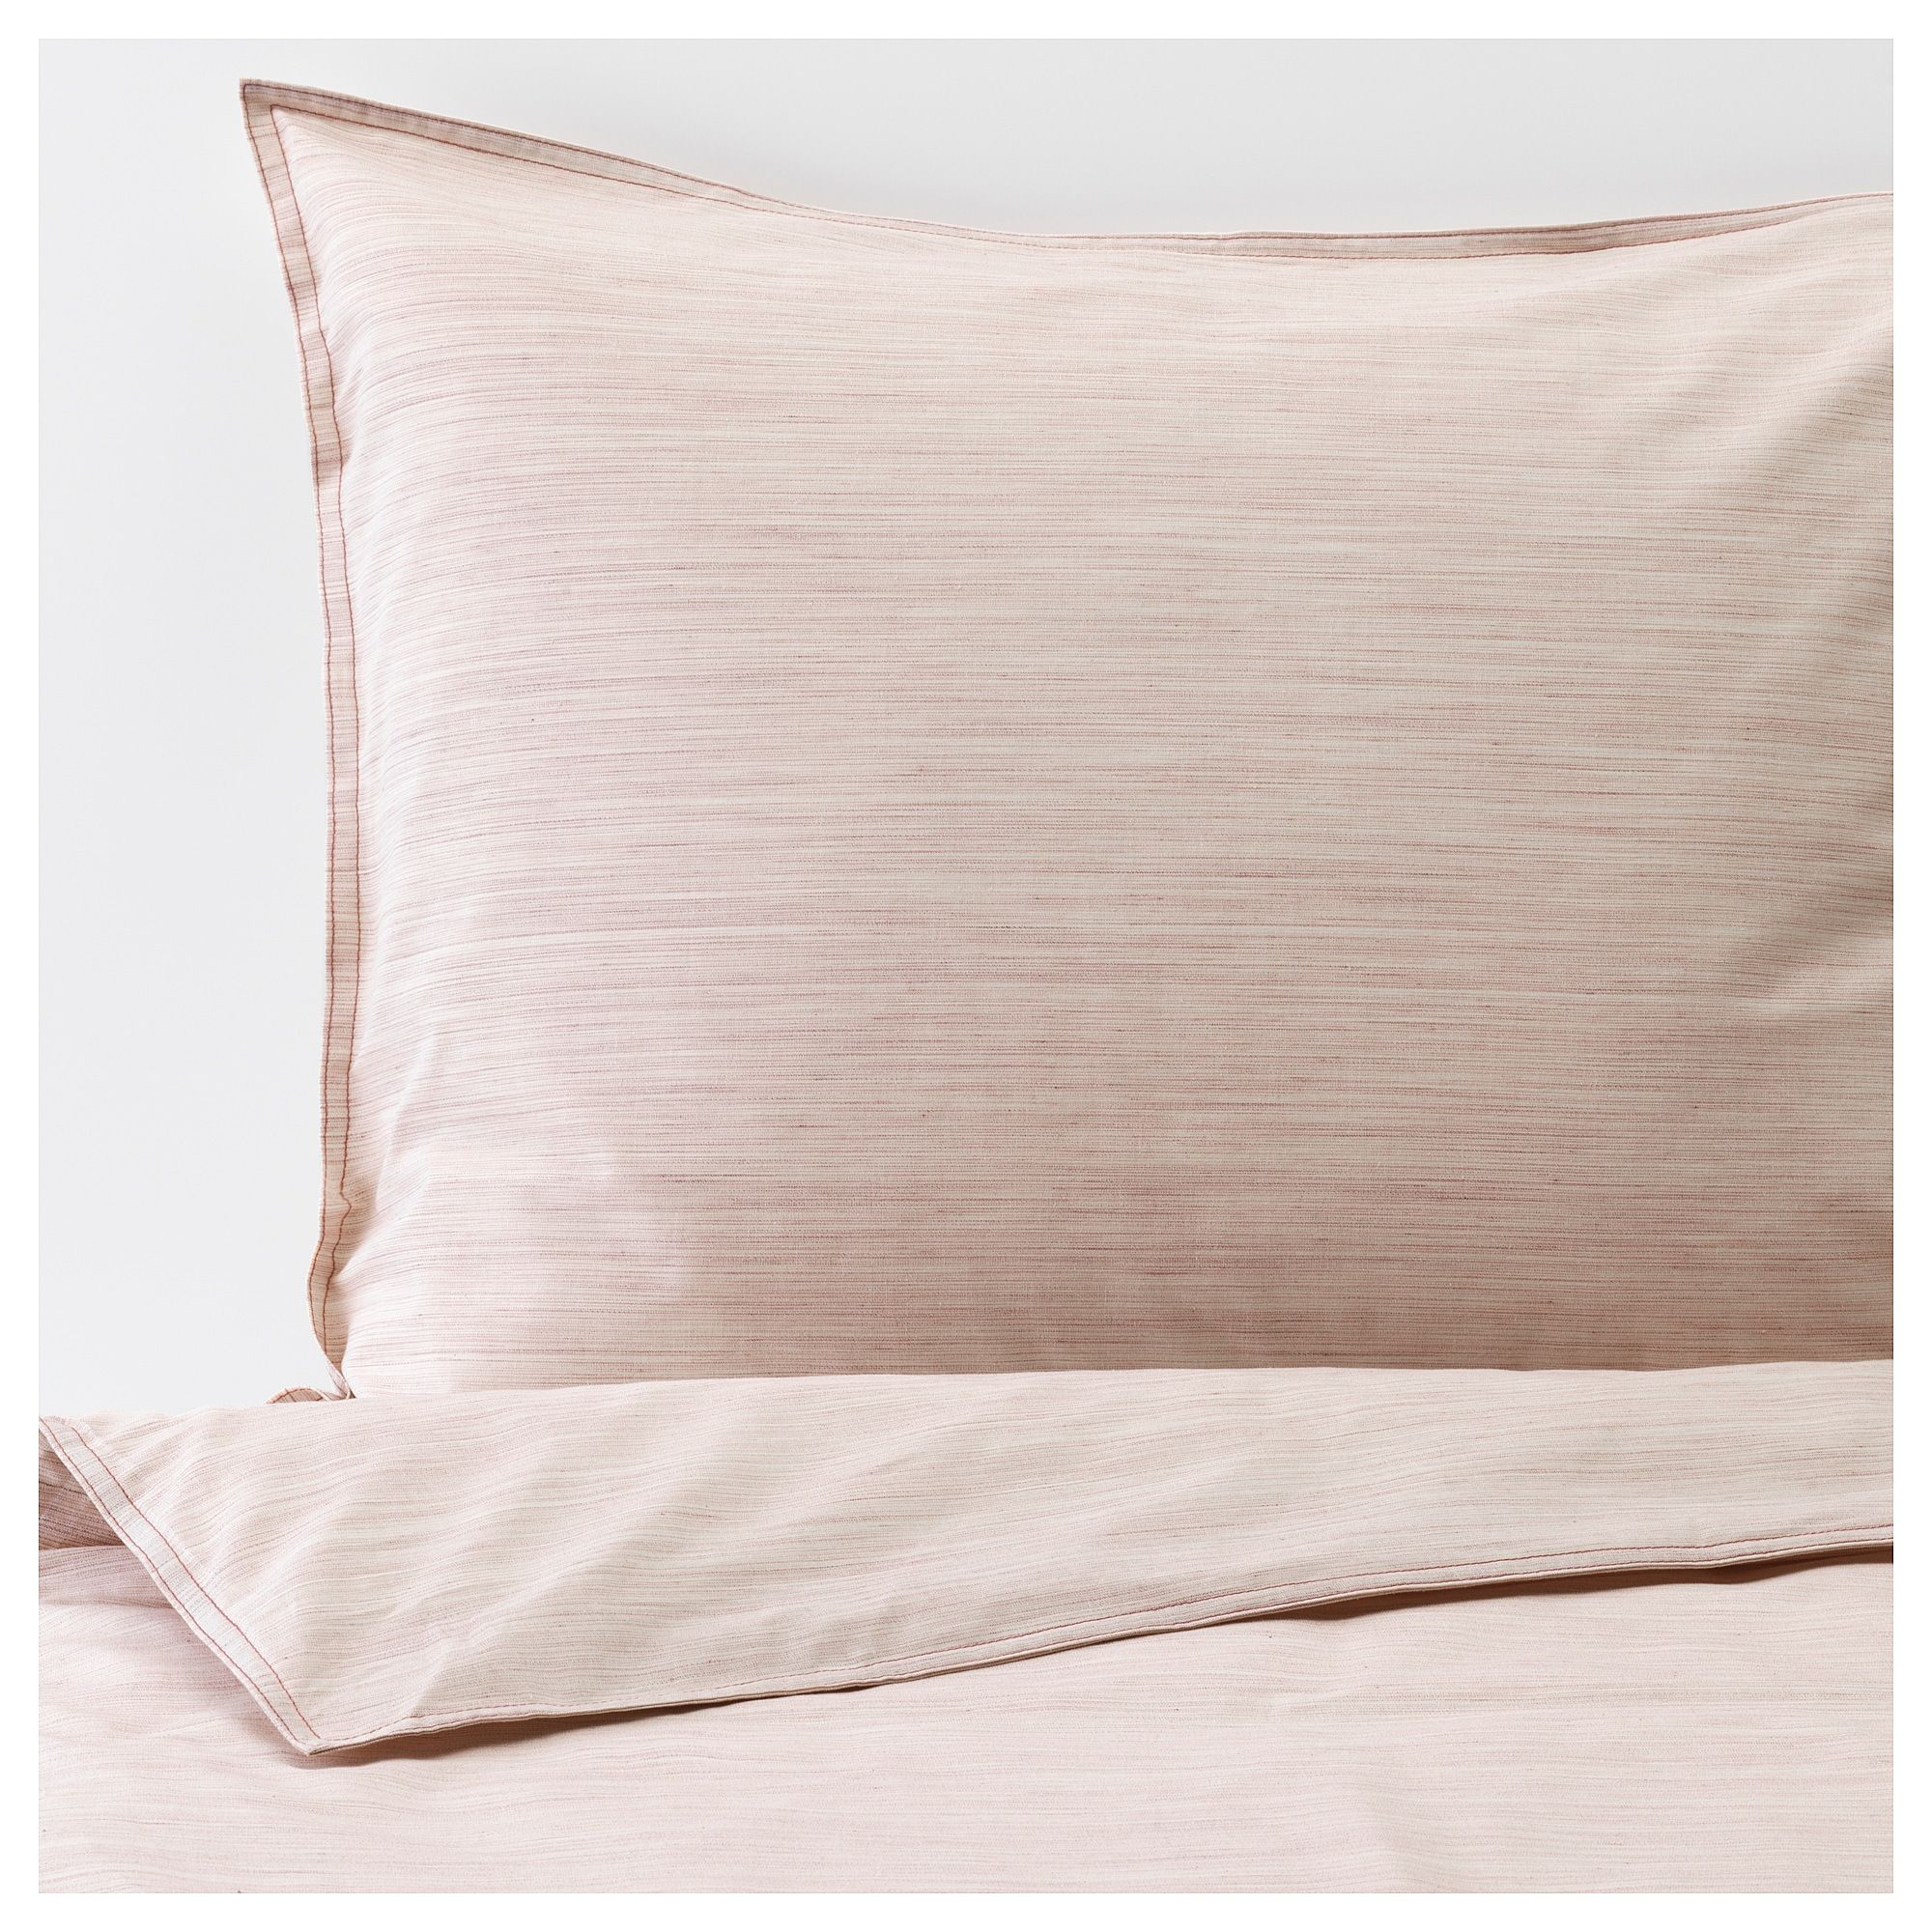 Skogsalm Duvet Cover And Pillowcase S Pink Full Queen Double